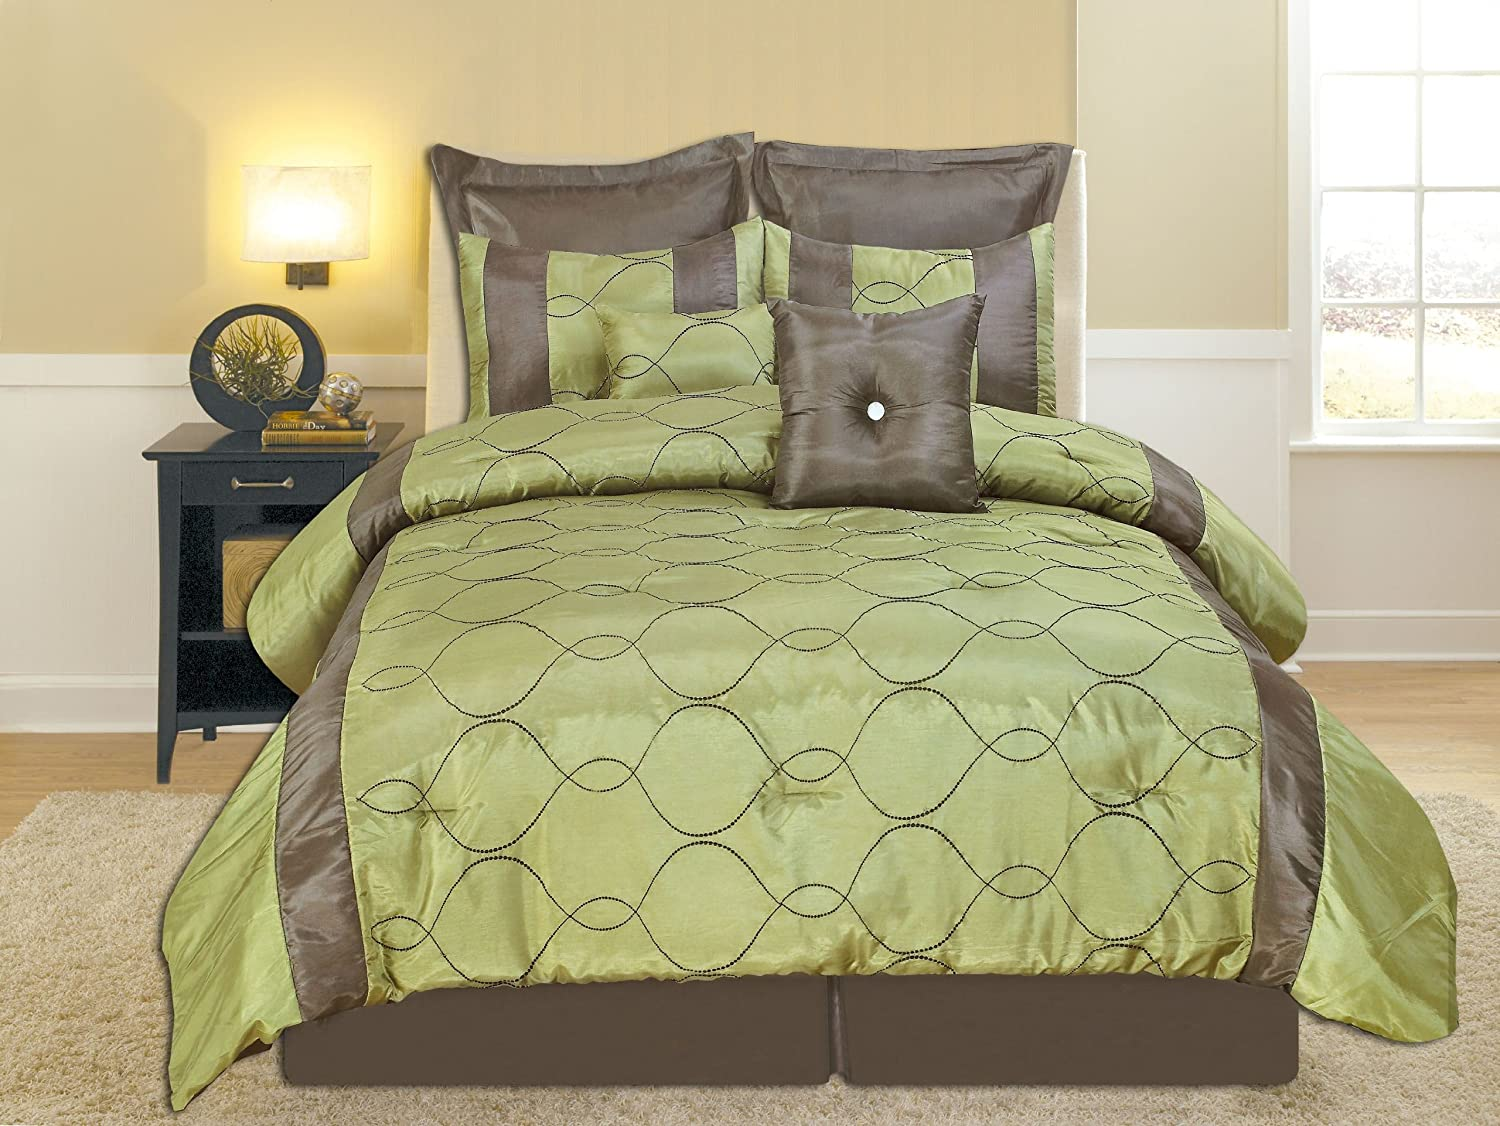 Green and yellow bedding set memes - Green and brown comforter ...